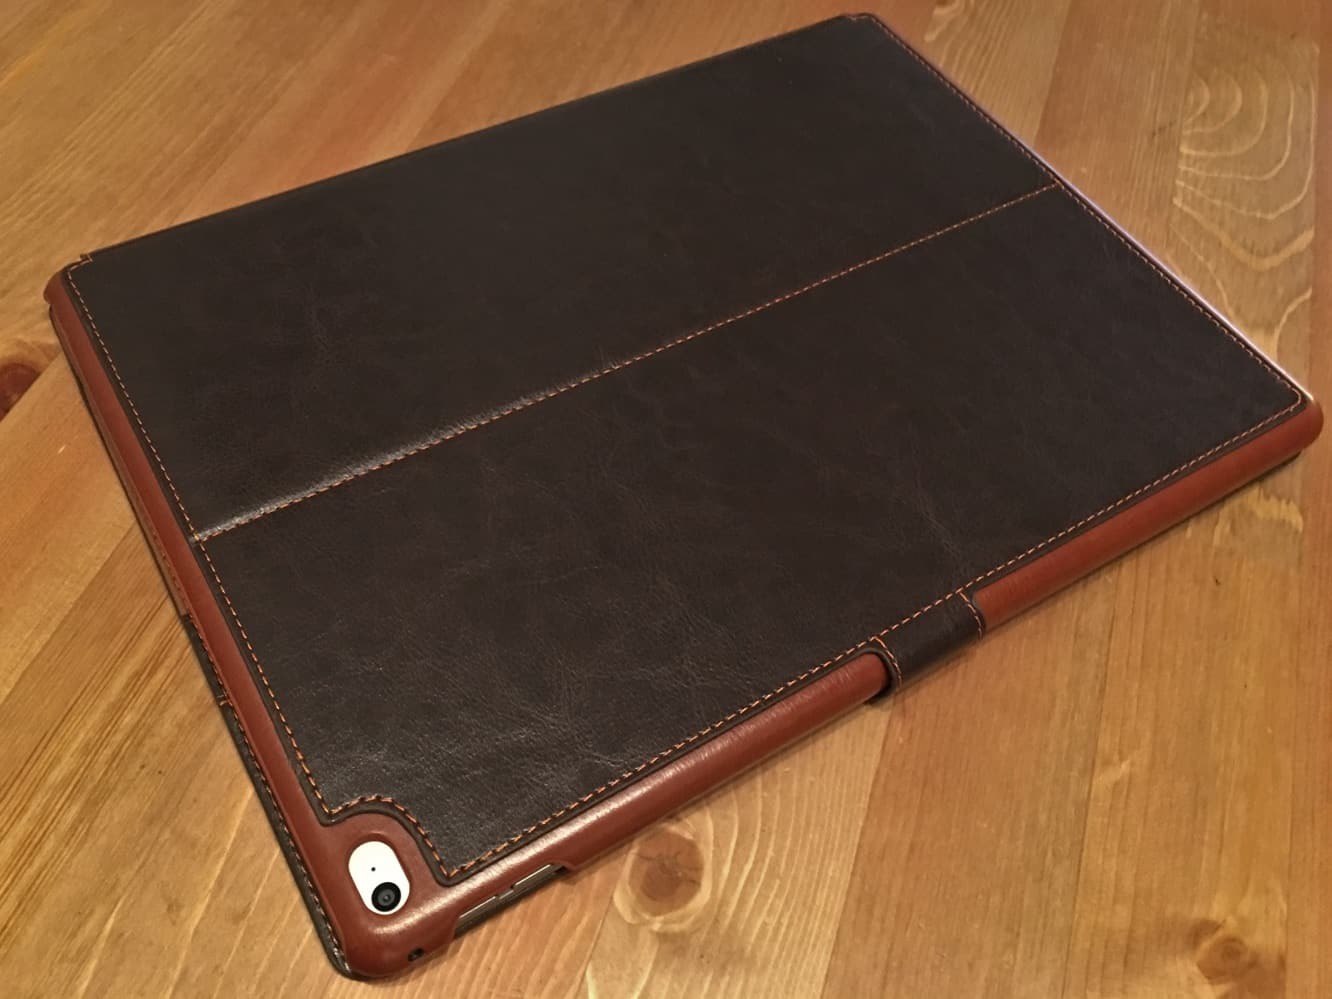 Review: VRS Design Dandy Layered Case for iPad Pro